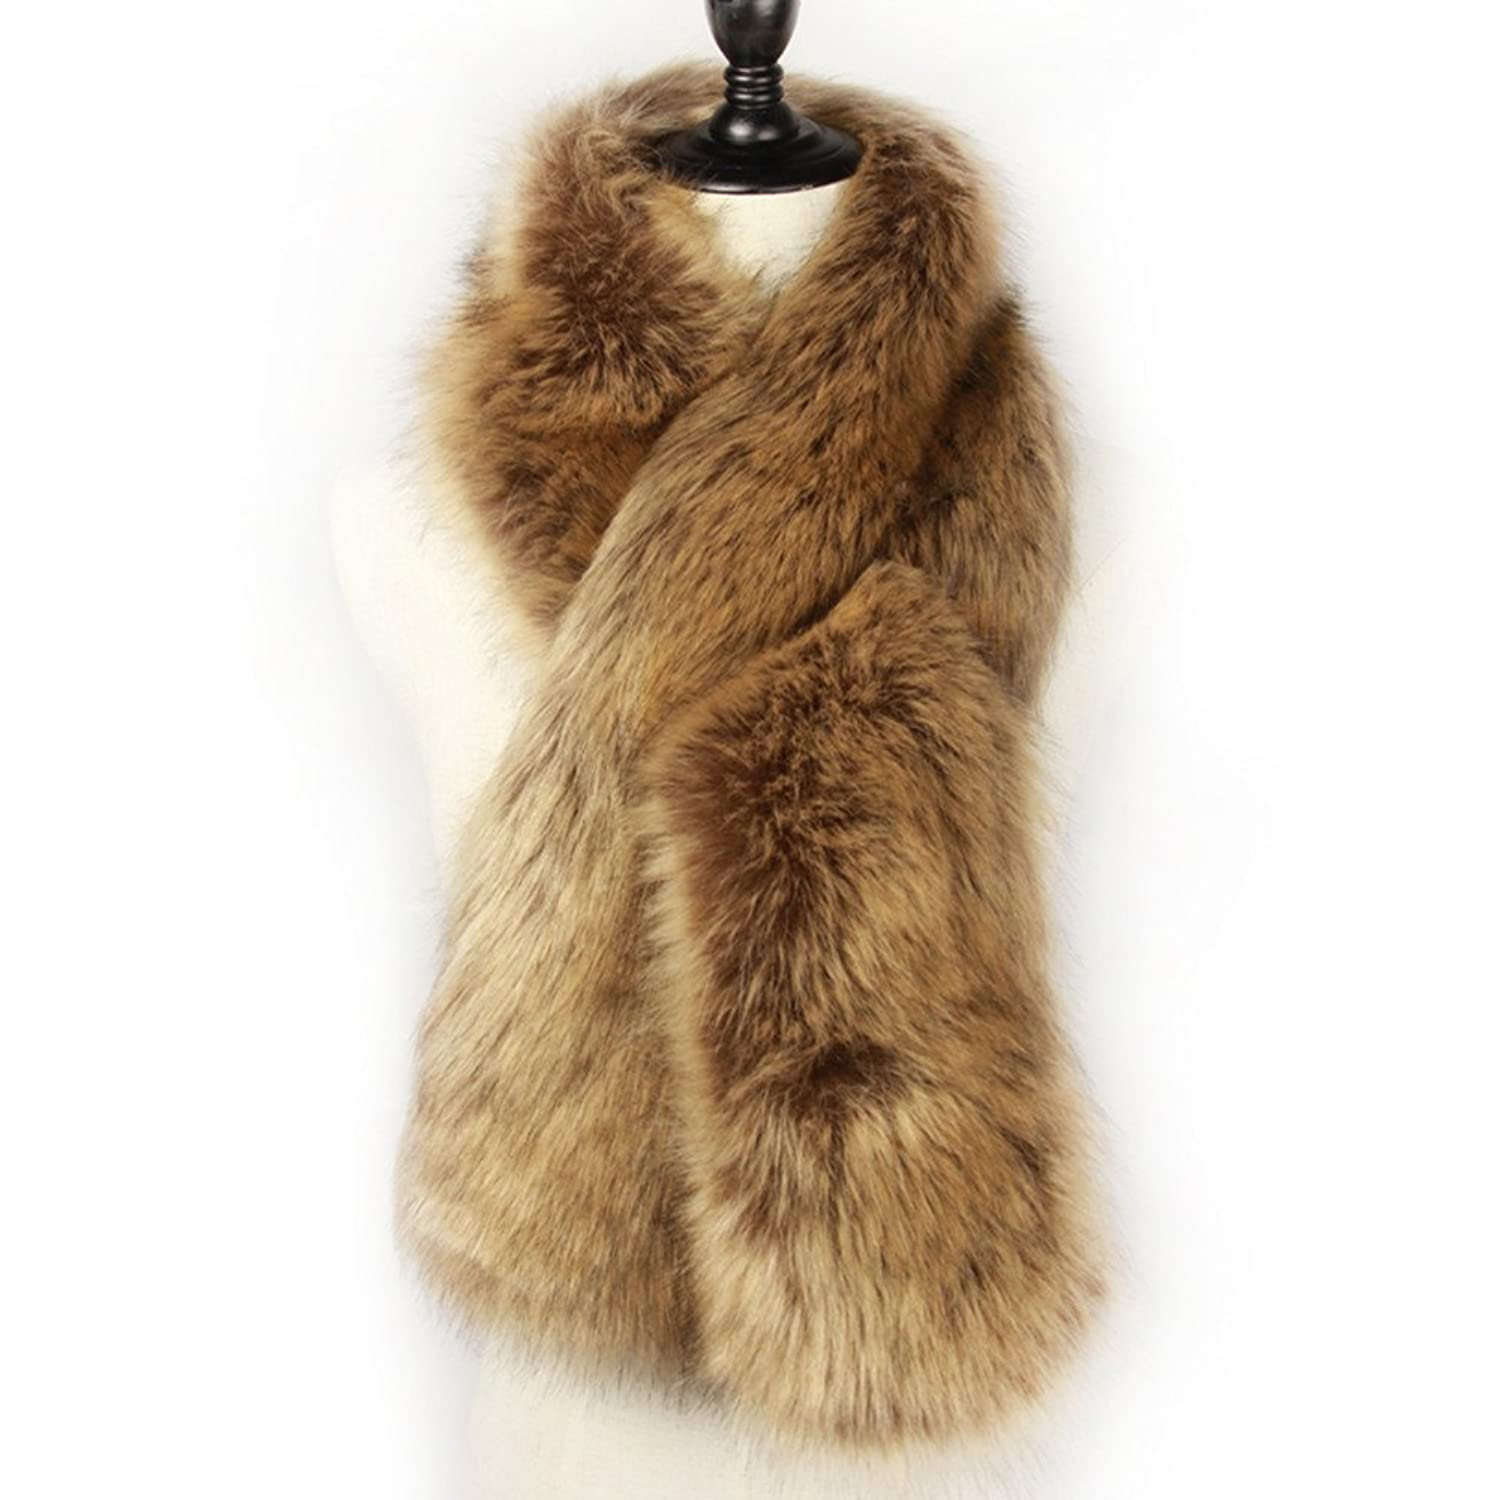 Vintage Scarf Styles -1920s to 1960s  Faux Fur Scarf Wrap Collar Shawl Shrug $15.99 AT vintagedancer.com